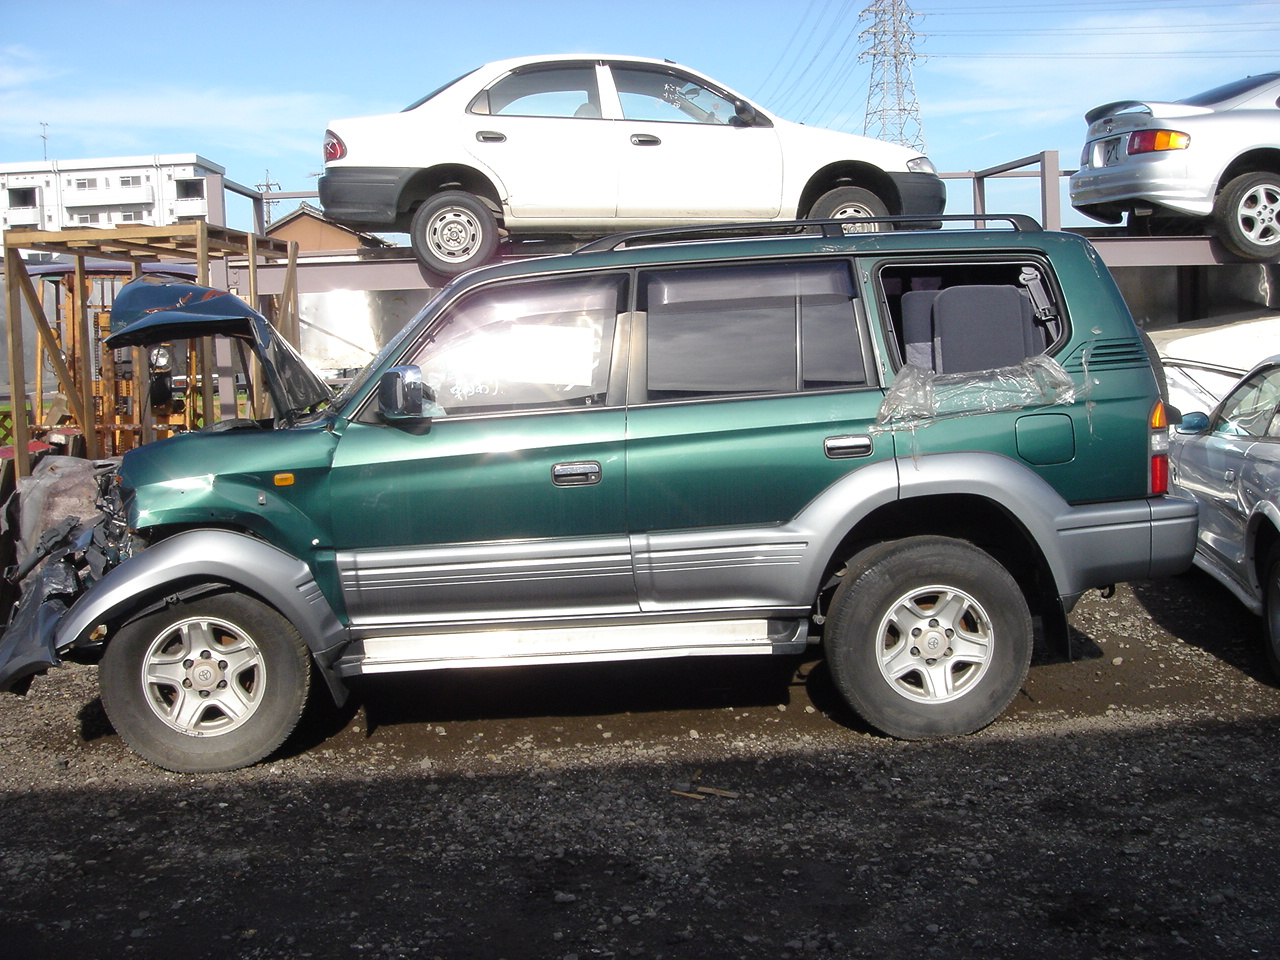 toyota land cruiser prado tz 1996 damaged for sale. Black Bedroom Furniture Sets. Home Design Ideas